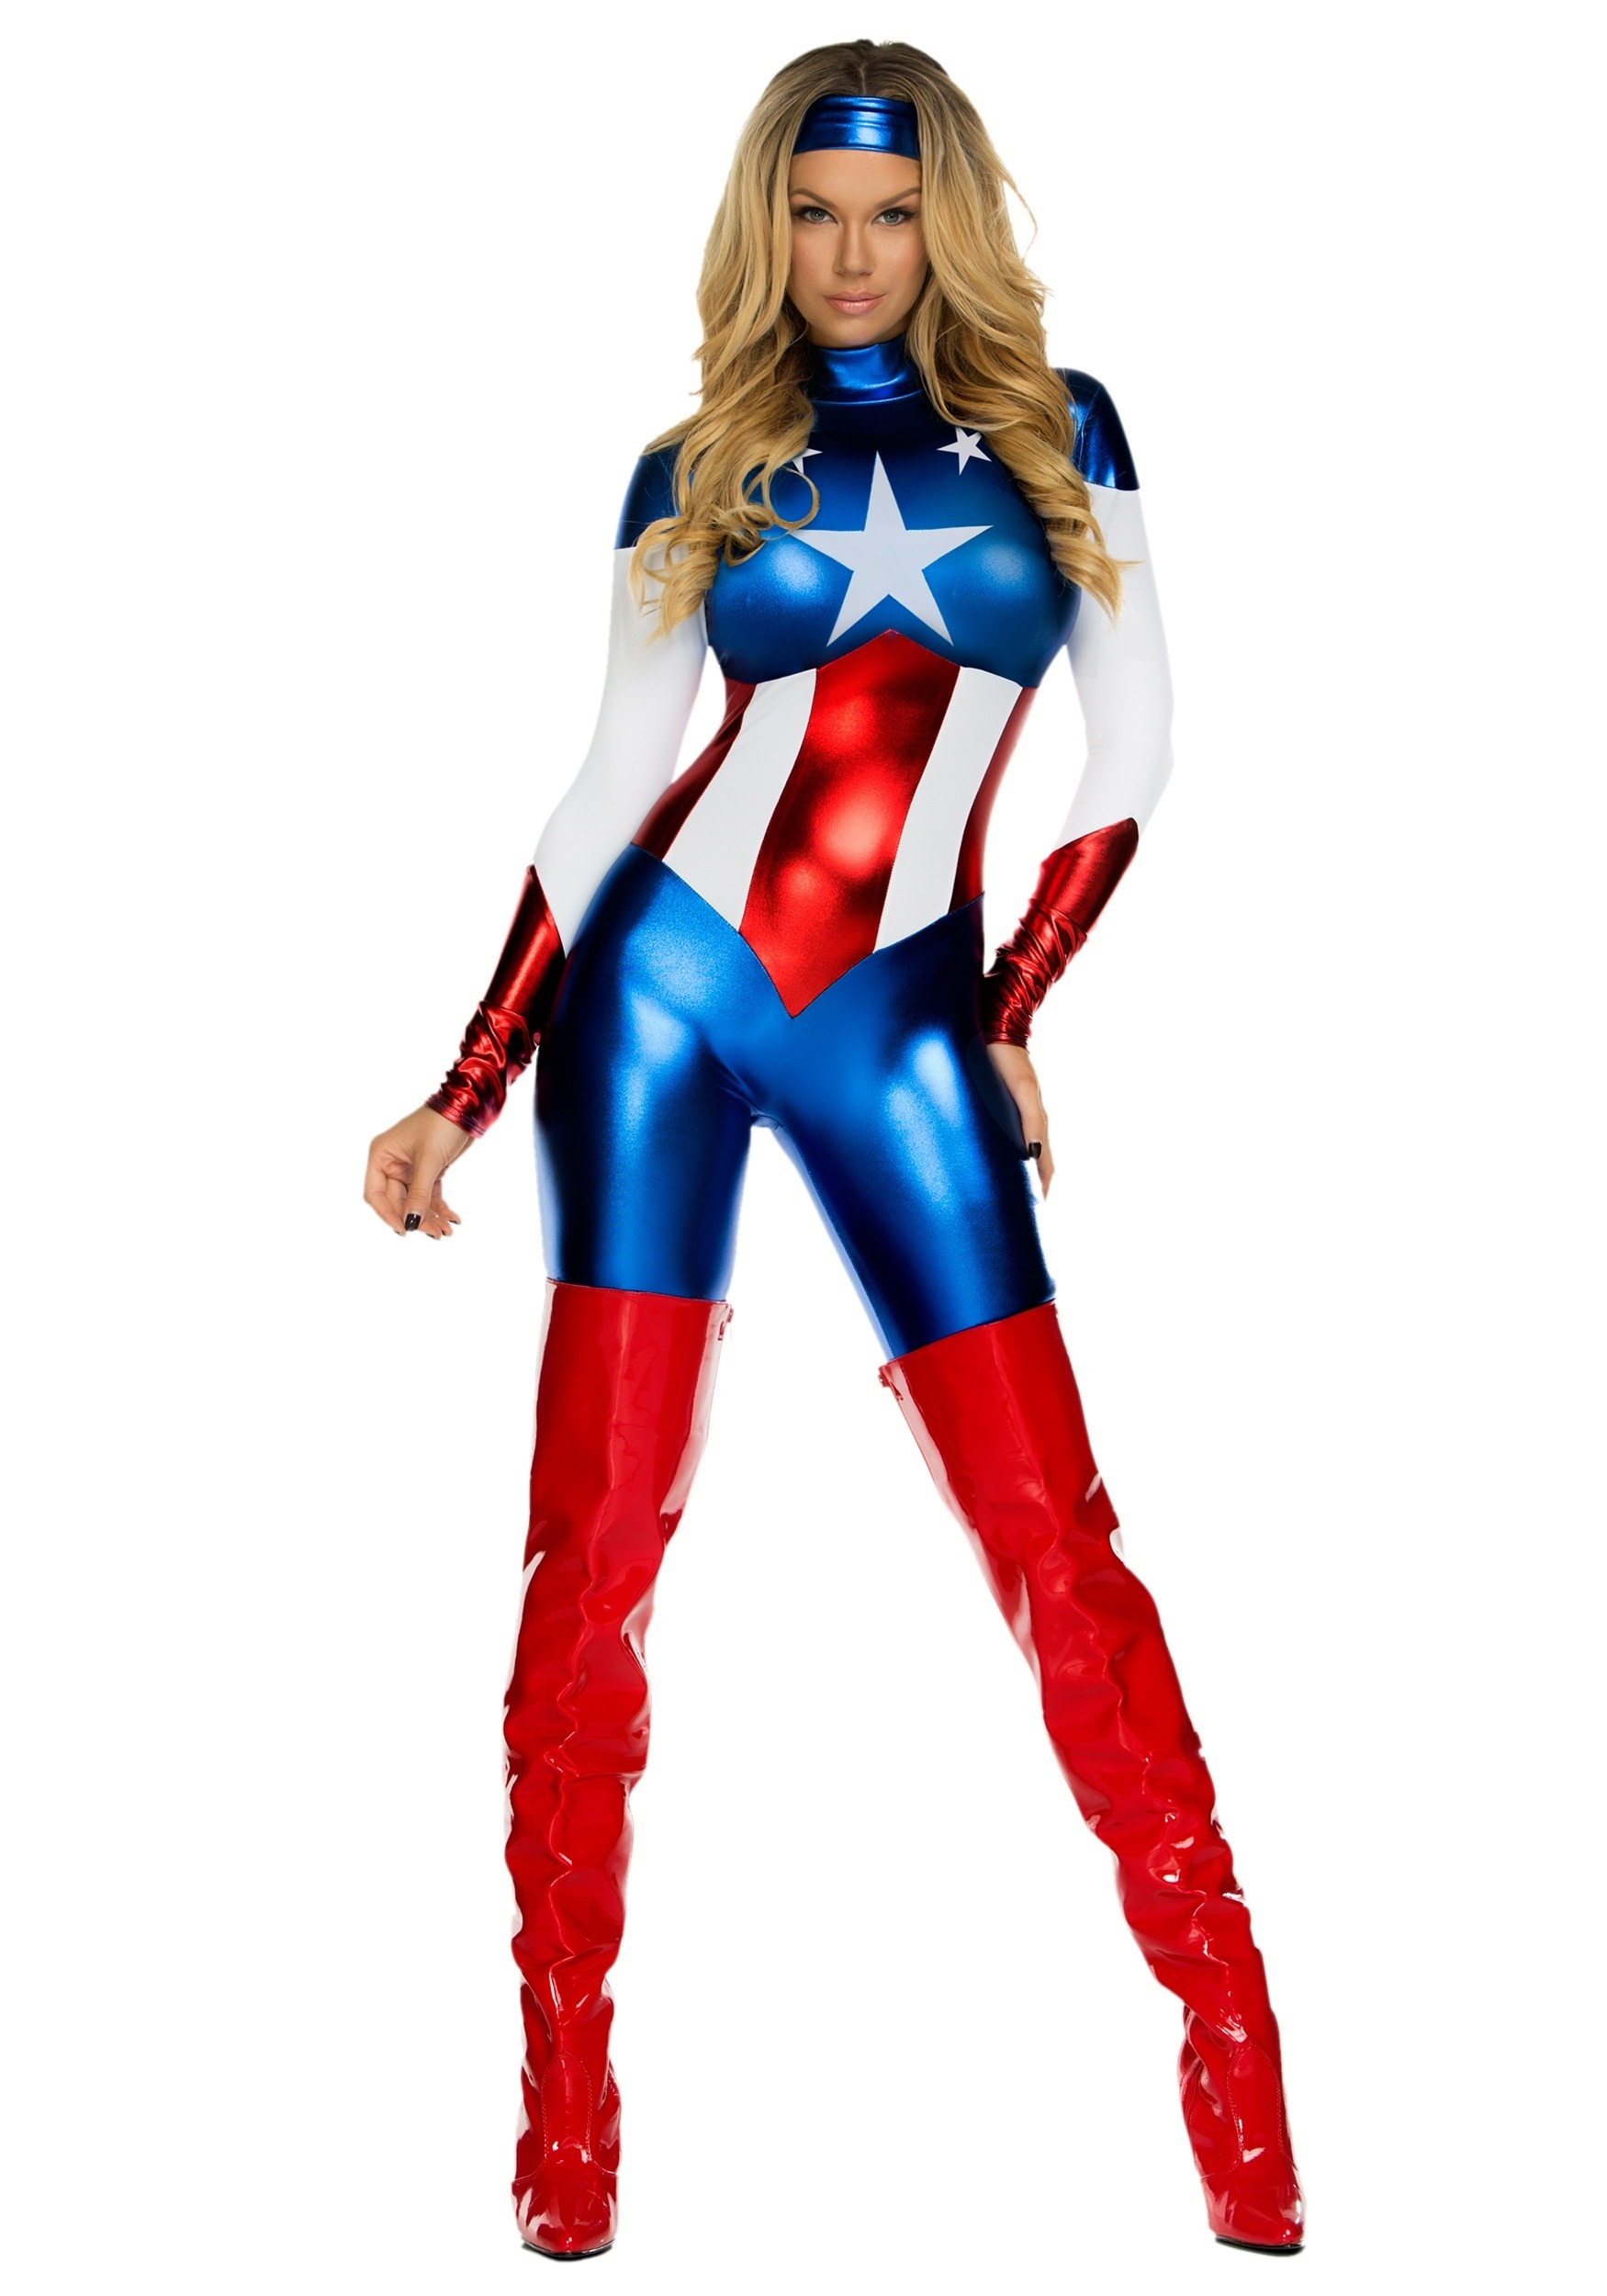 596236cfa Superhero Costumes for Women - Female Superhero Costumes